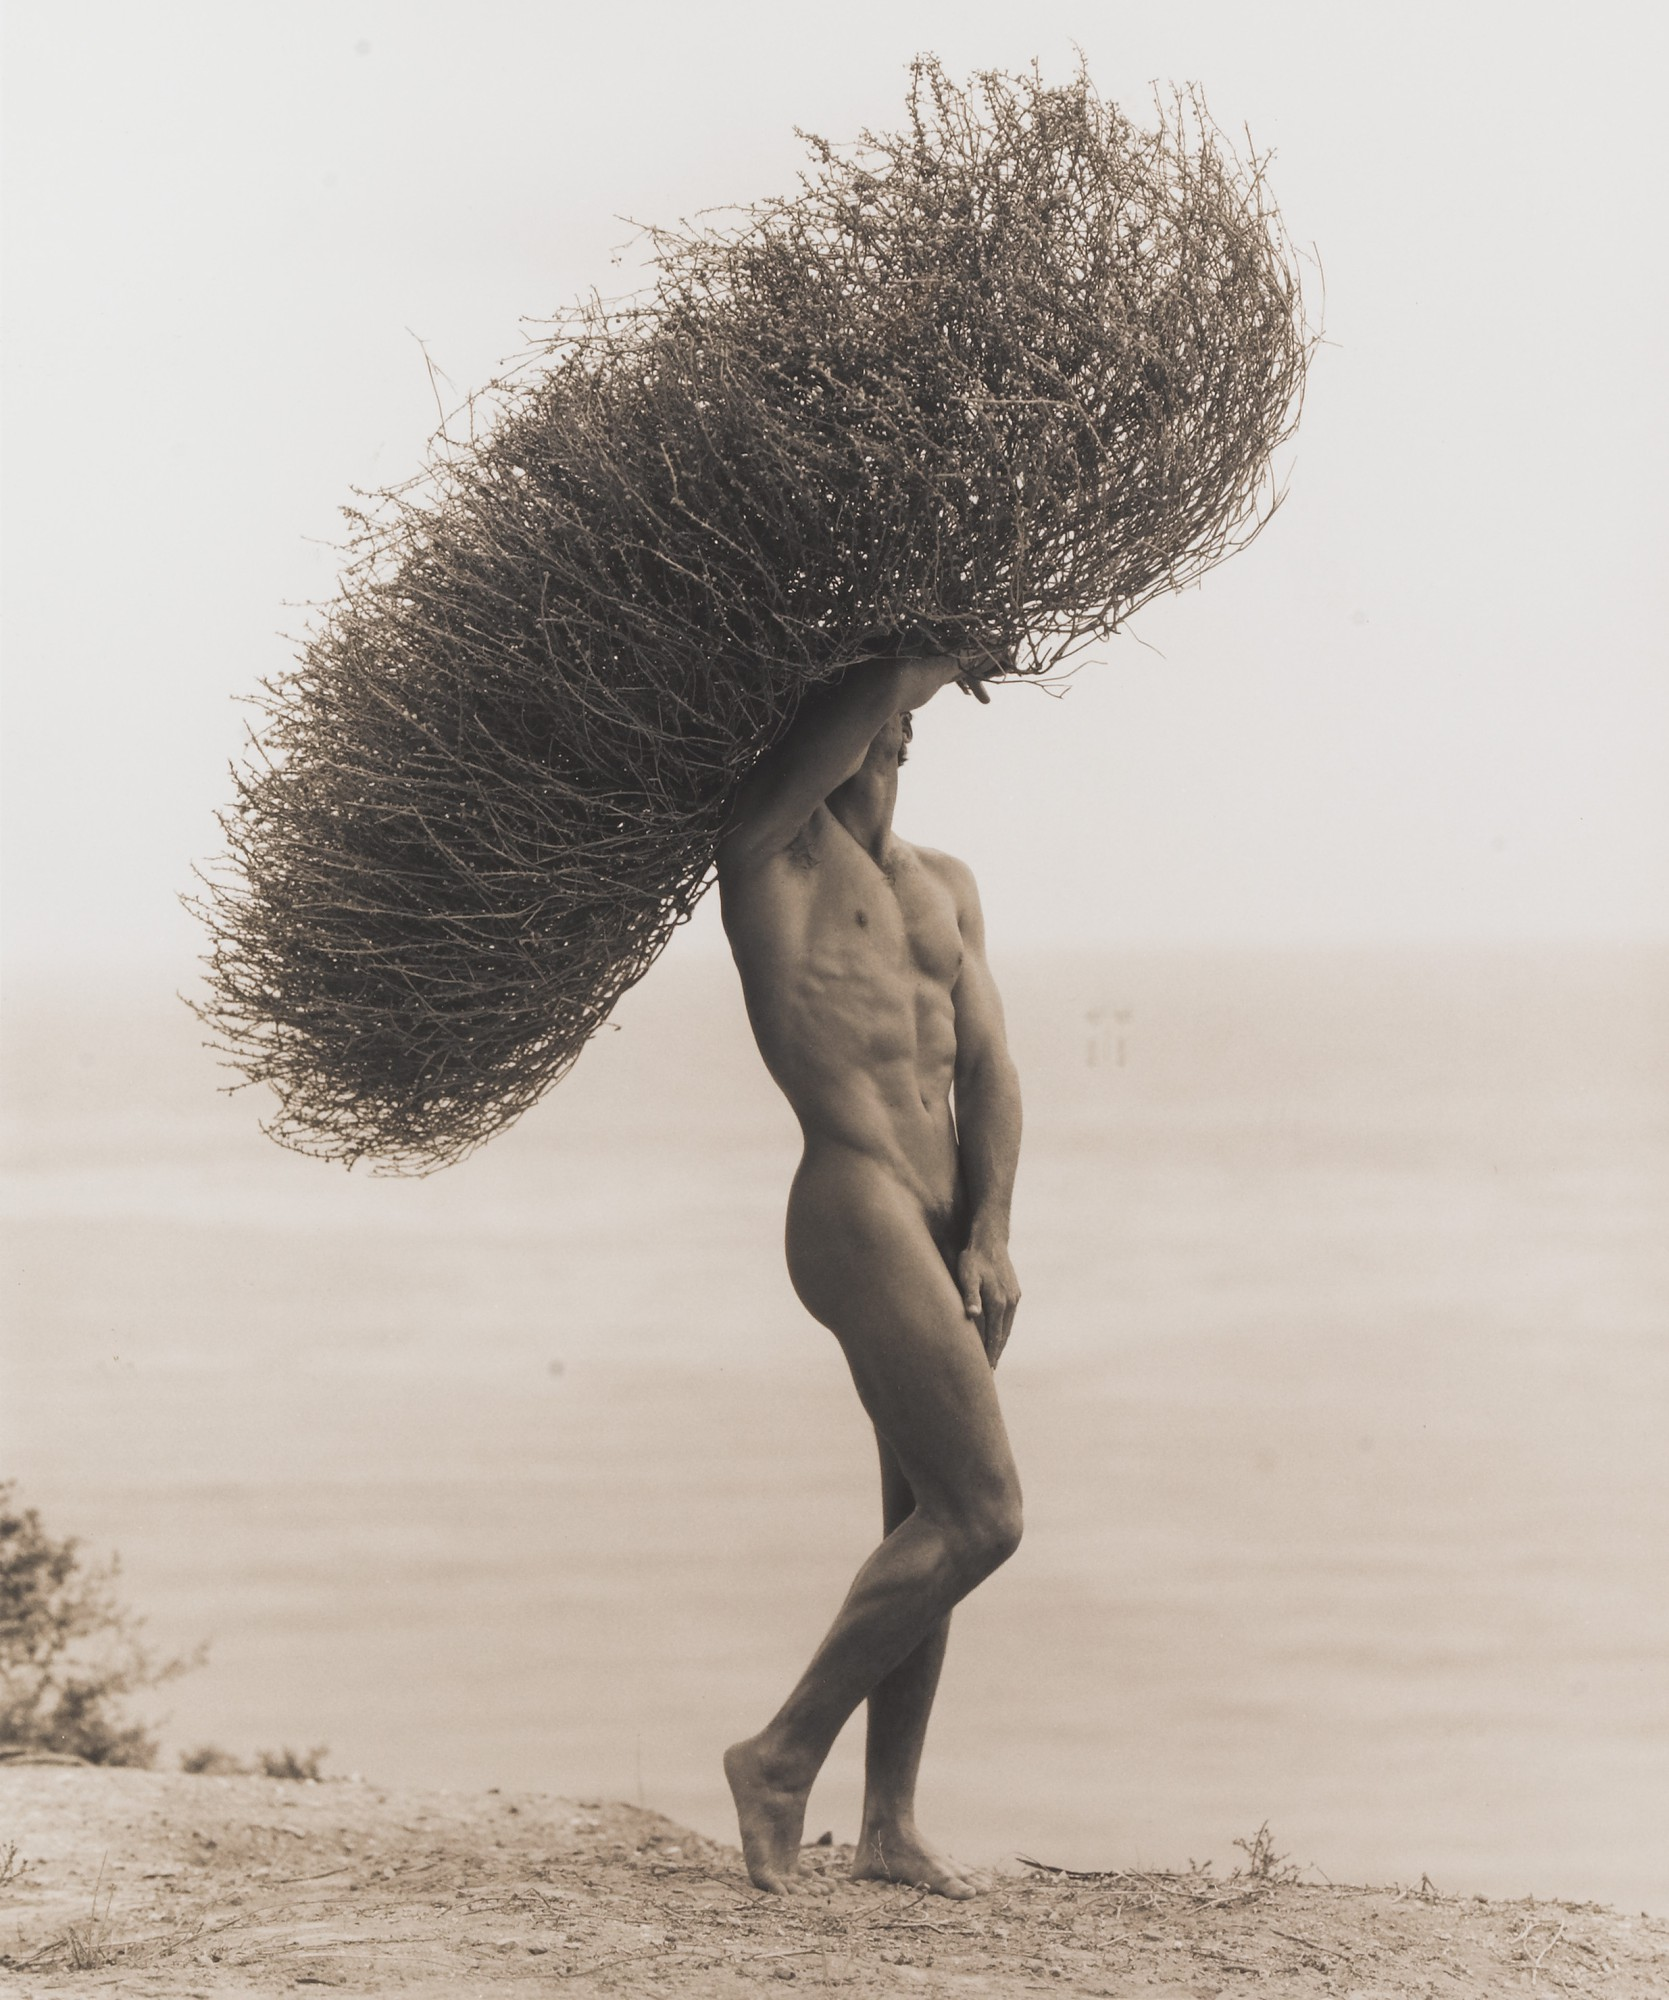 Herb Ritts | Male Nude with Tumbleweed, Paradise Cove, 1986